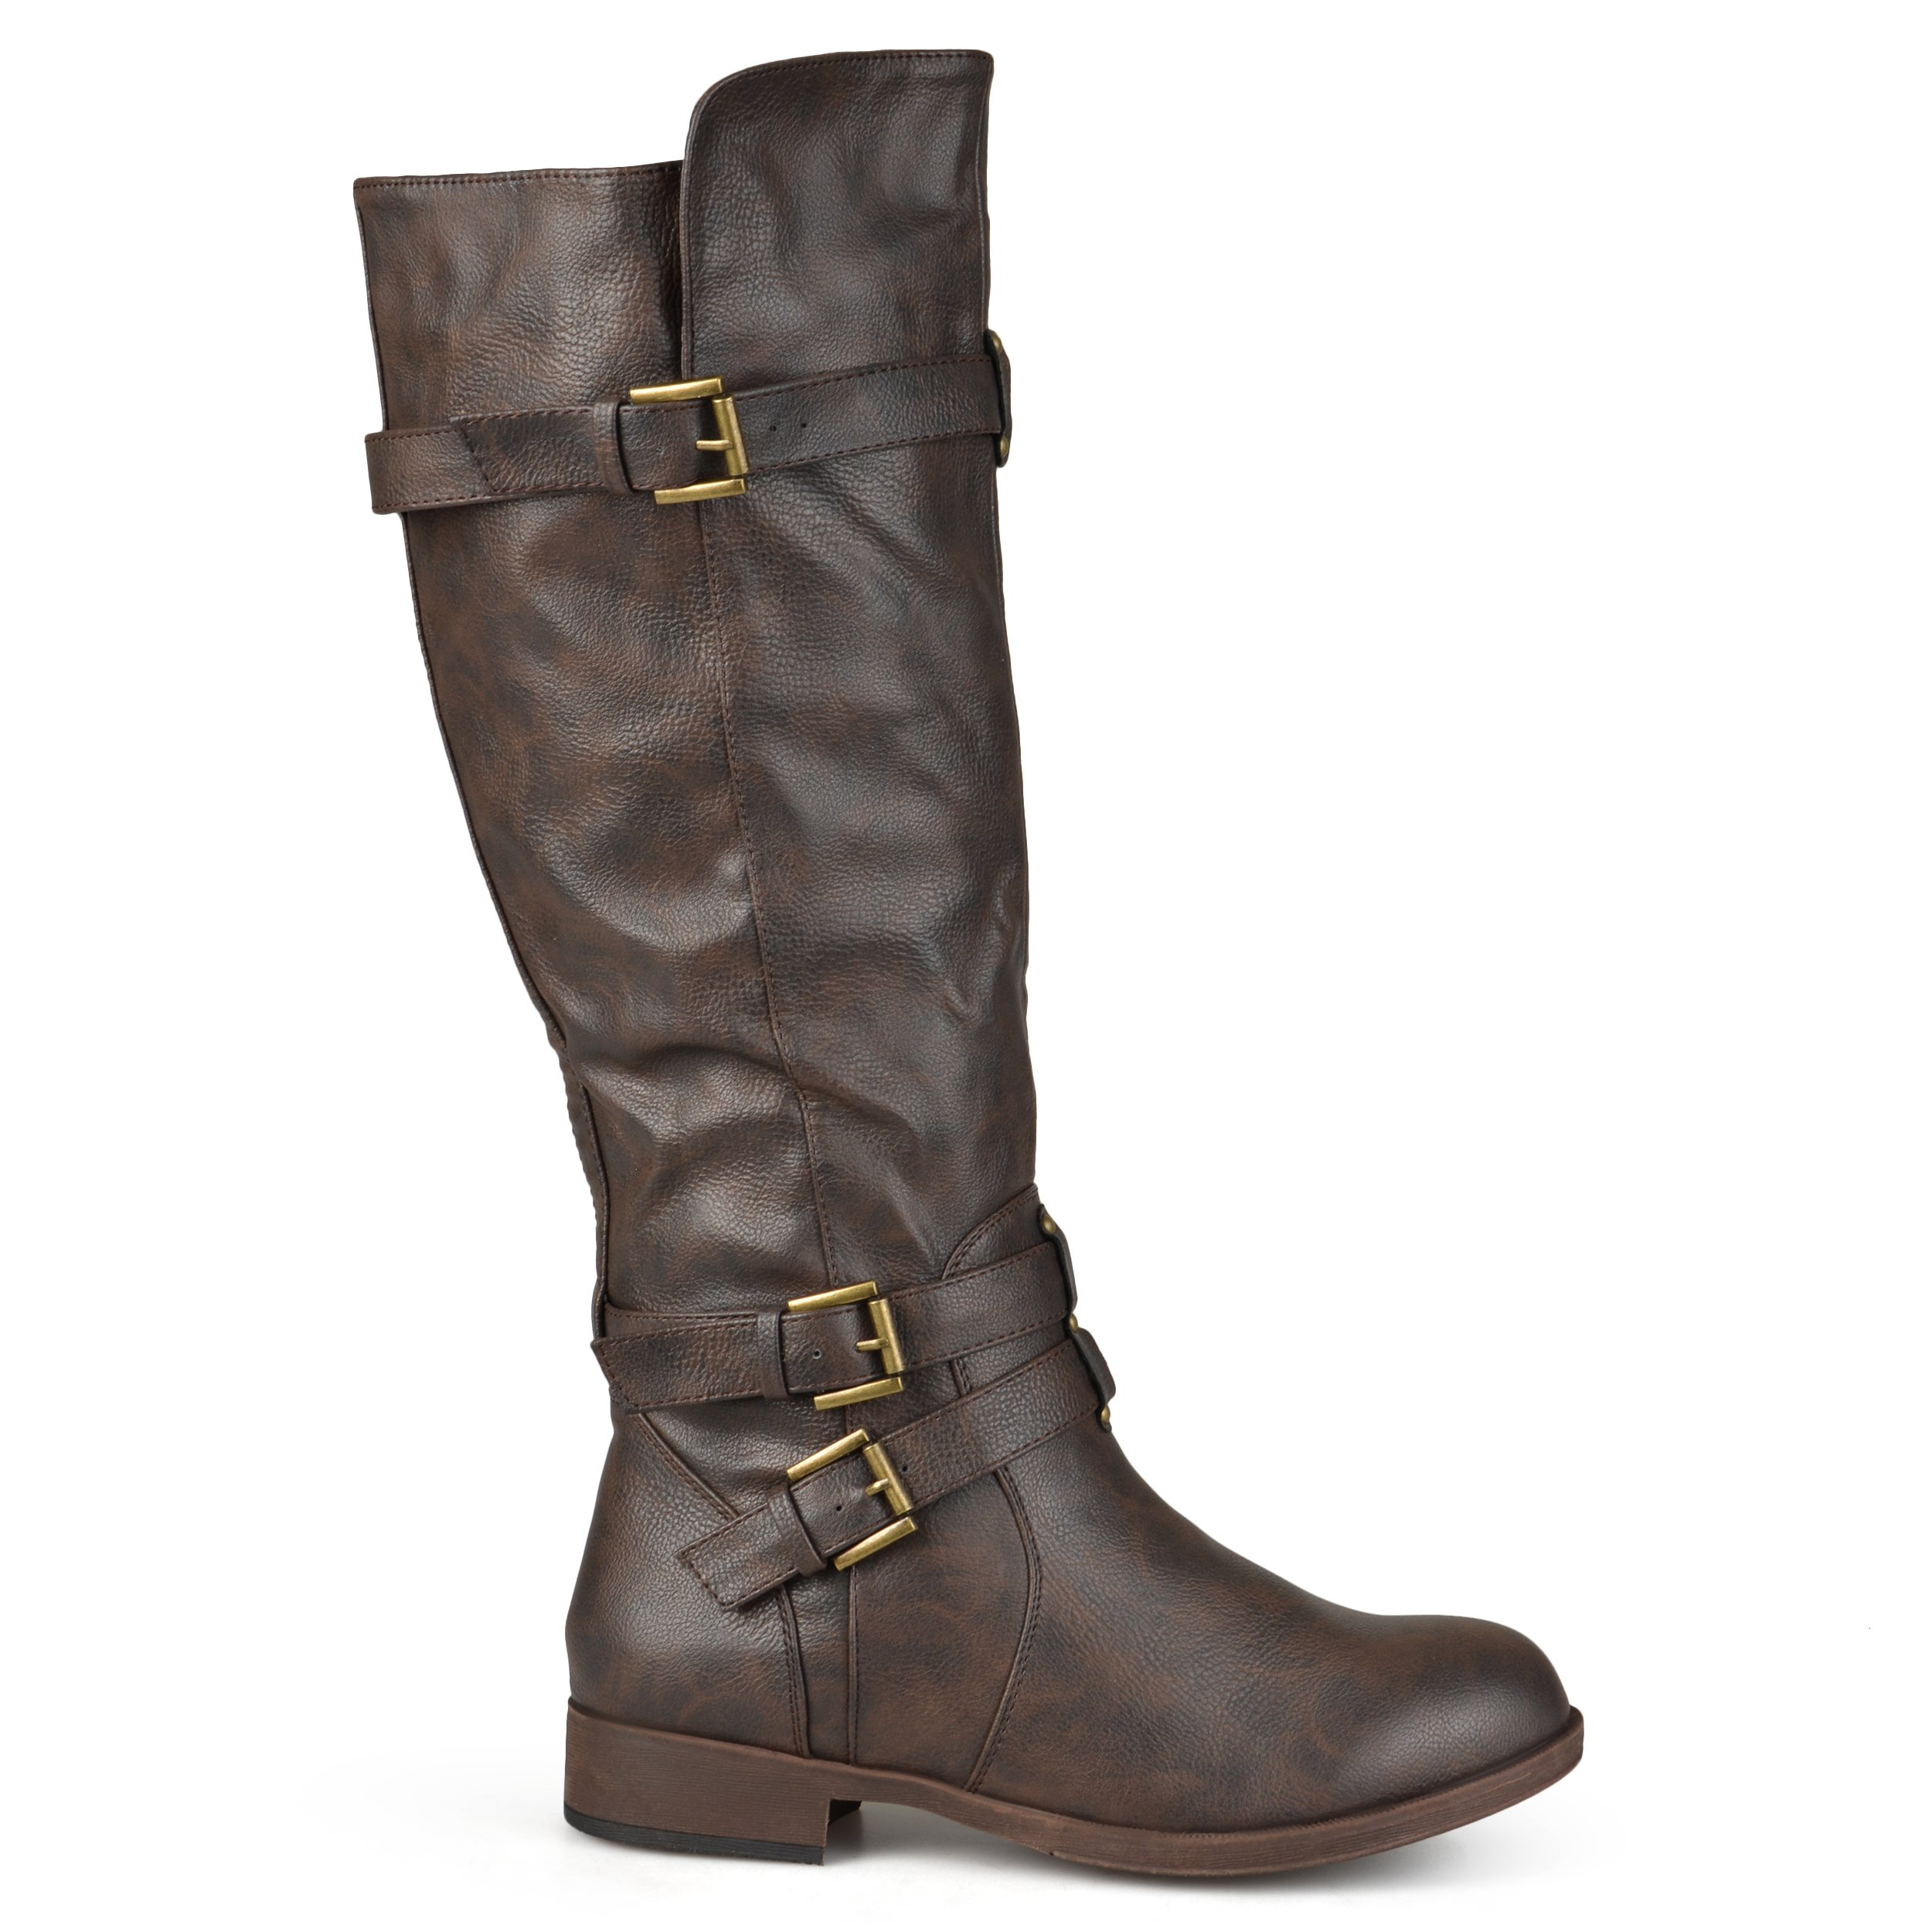 Brinley Co Women's Buffalo Knee High Boot, Brown, 8.5 Wide/Wide Shaft US